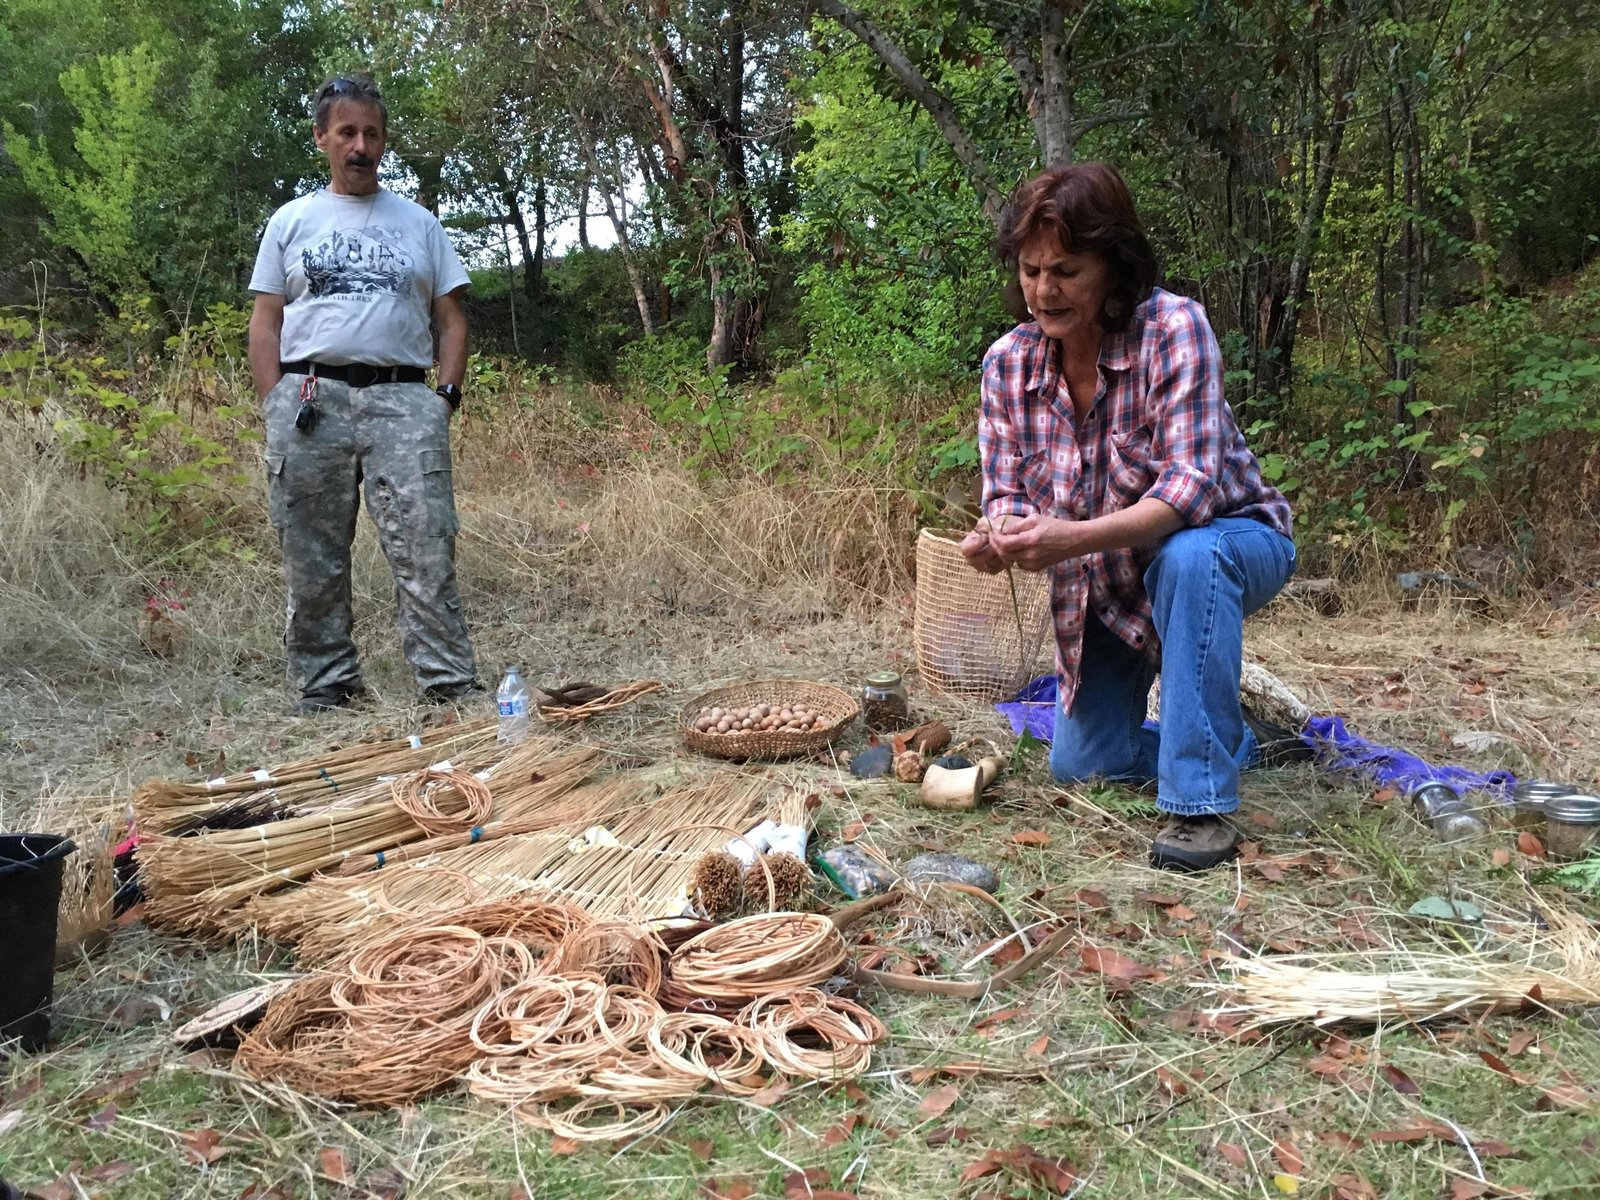 Karuk cultural practitioner Kathy McCovey leads TREX education. As part of its benefits, prescribed fires provide healthier acorns and basket-weaving materials for local tribal members.  Photo 8 of 8 in To Combat Raging Wildfires, California Turns to Native American Knowledge